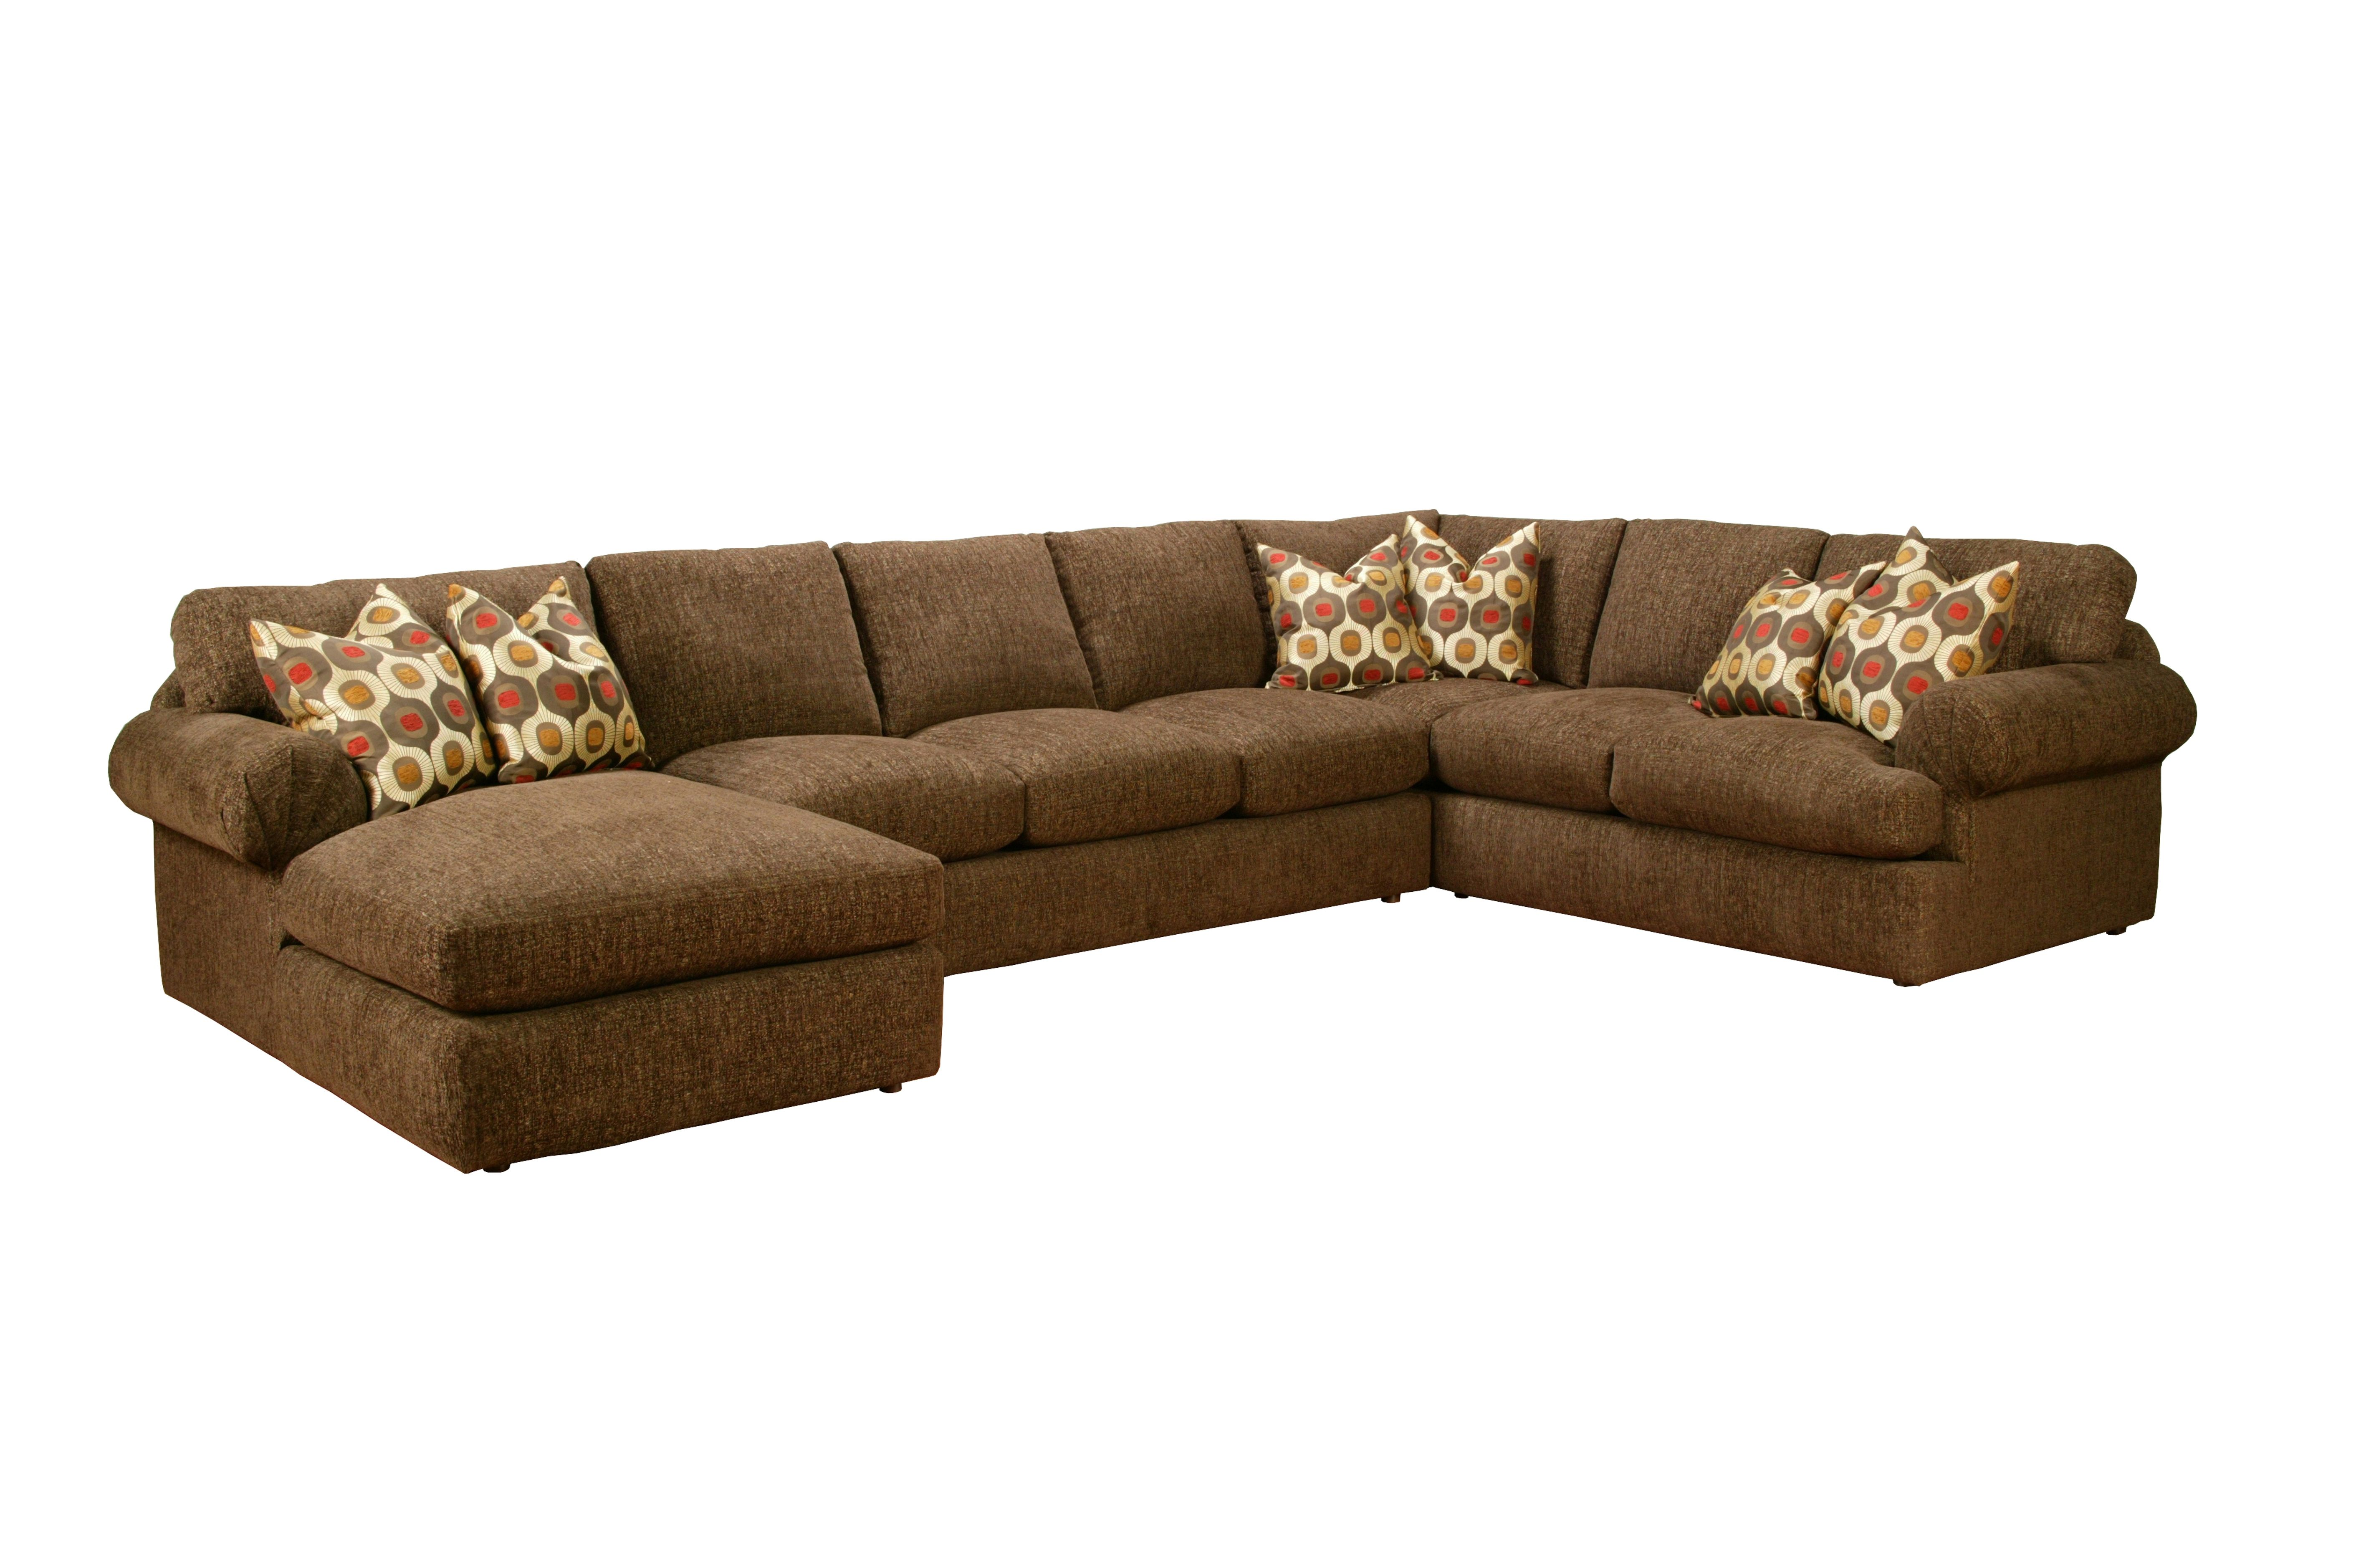 in creations full gilbert room by furniture firestone az warehouse awesome robert spaces discount scottsdale phoenix stores living michael cupboard sectional of suns american size jobs